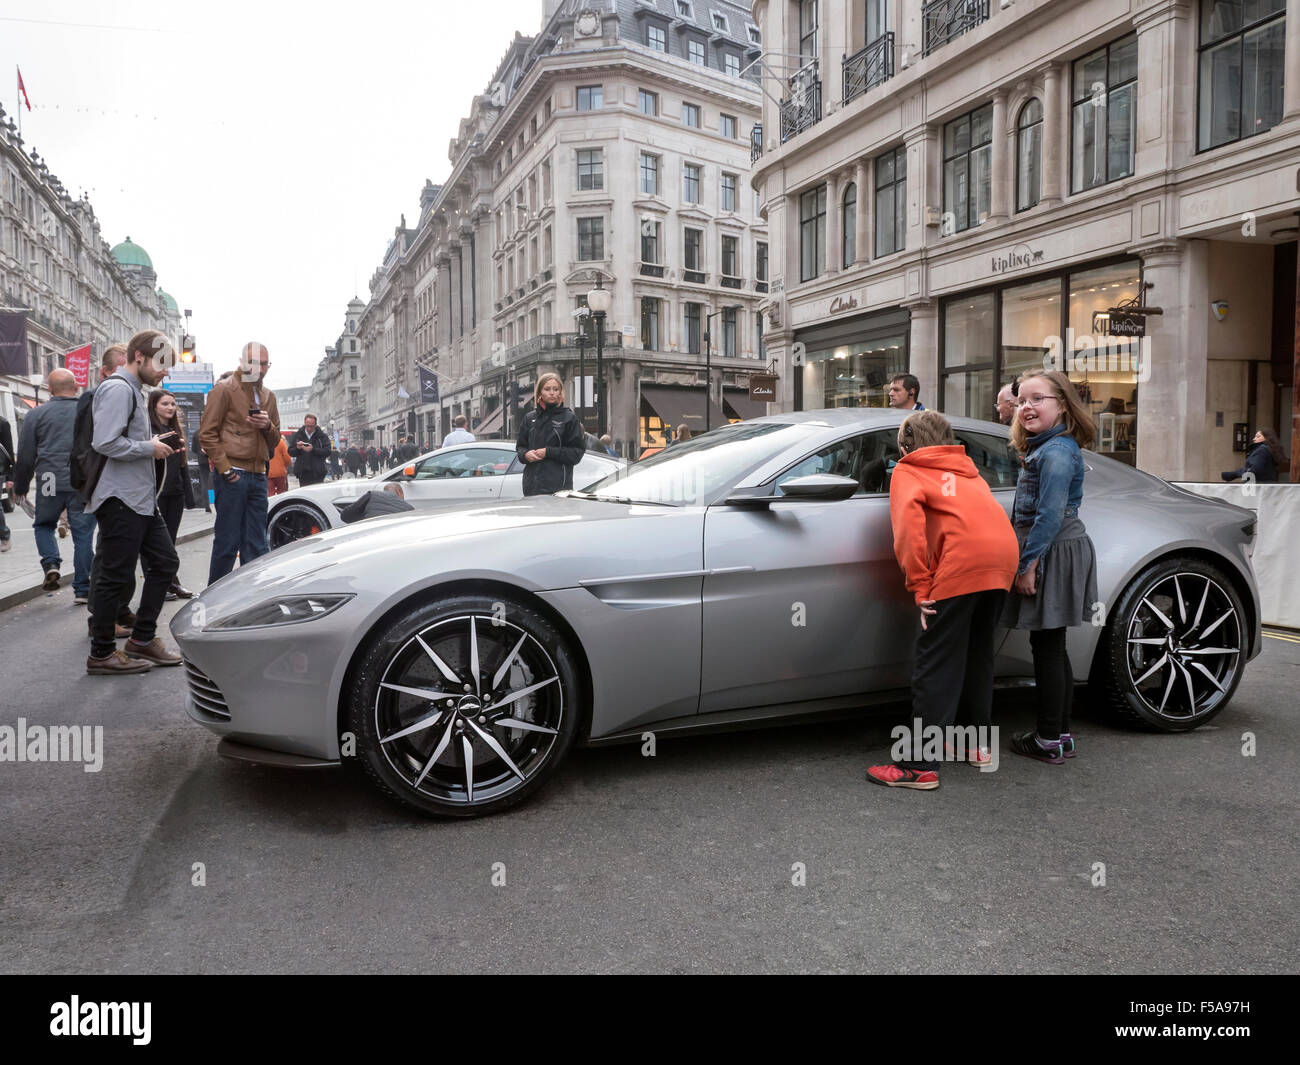 London Uk 31st October 2015 Aston Martin Db10 On Display At